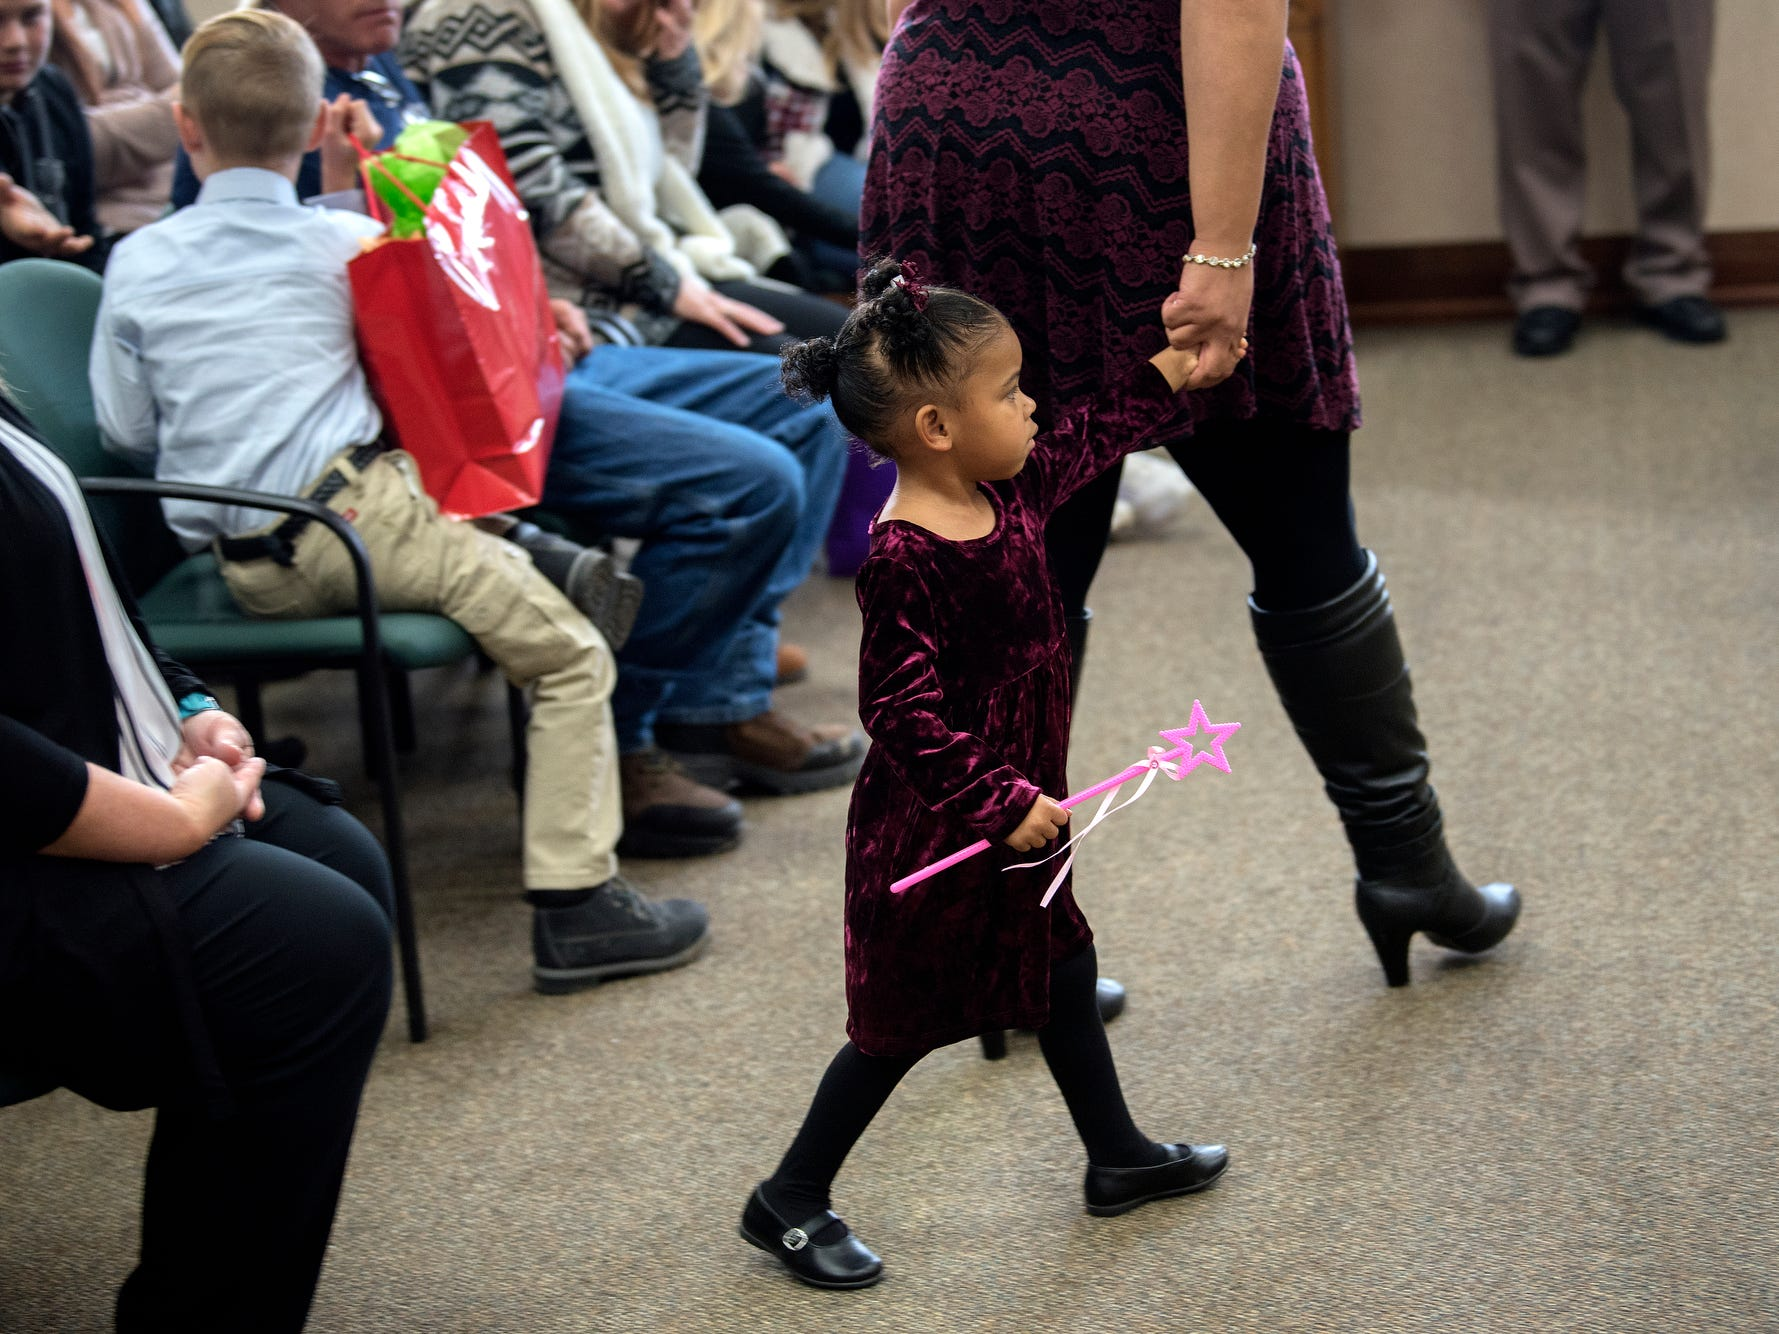 Bath resident Nicole Leggions holds the hand of Azaria, 2, as Nicole prepares to finalize the adoption of Azaria, and her brother Aquan, 2, during a Michigan Adoption Day ceremony at the Clinton County Courthouse in St. Johns. Four families finalized the adoptions of six children.